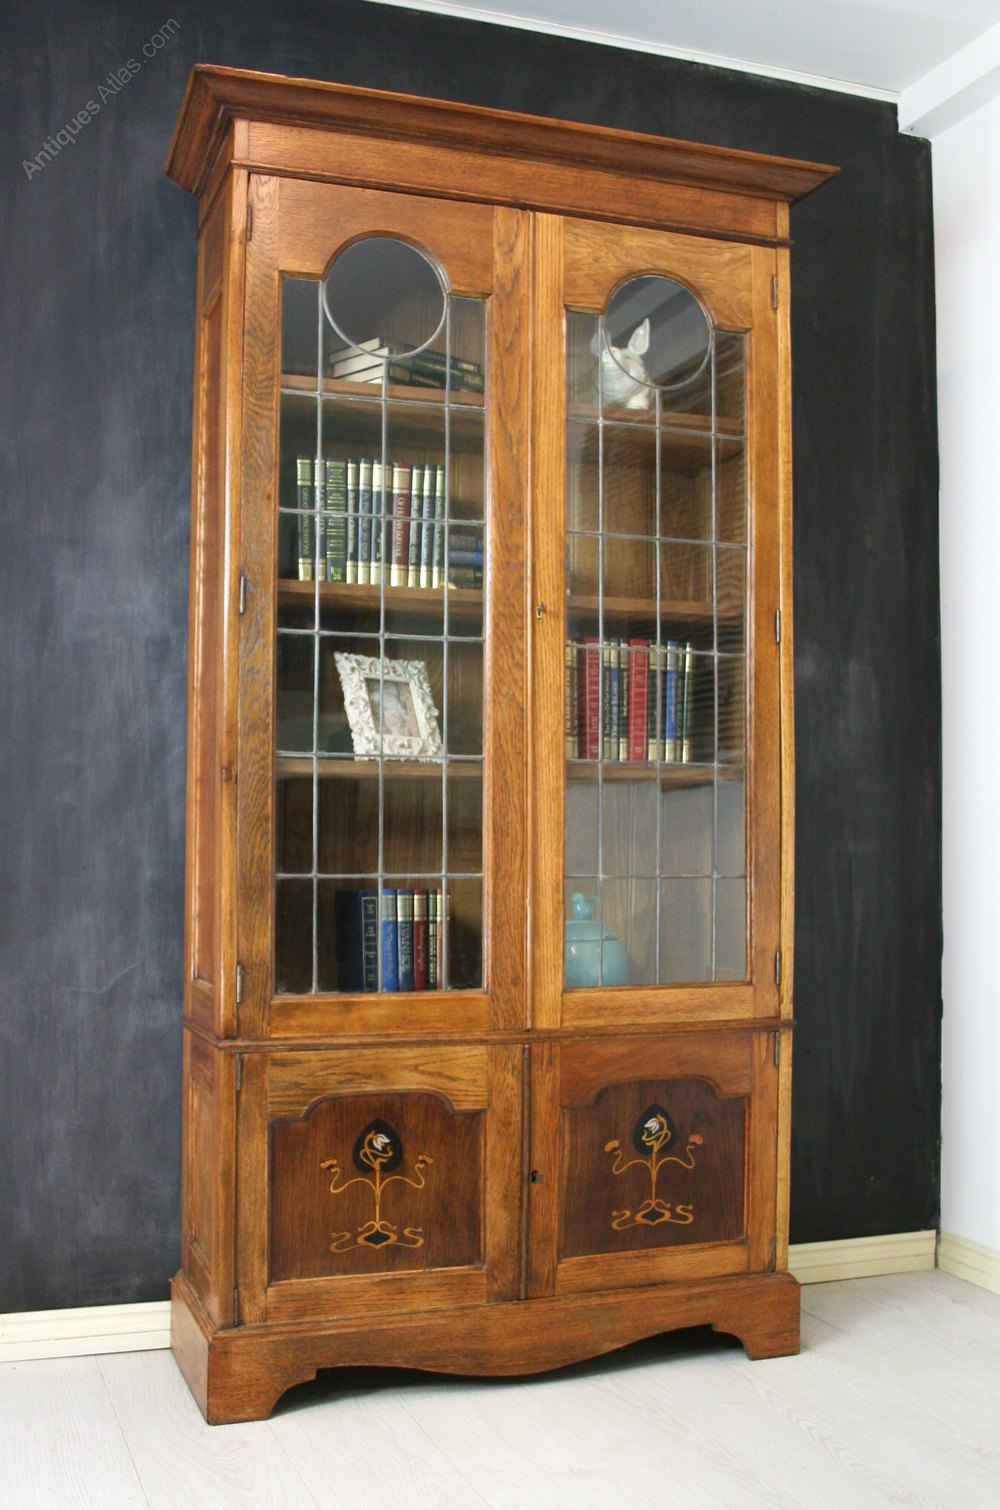 Arts and crafts oak glazed bookcase antiques atlas for Arts and crafts bookshelf